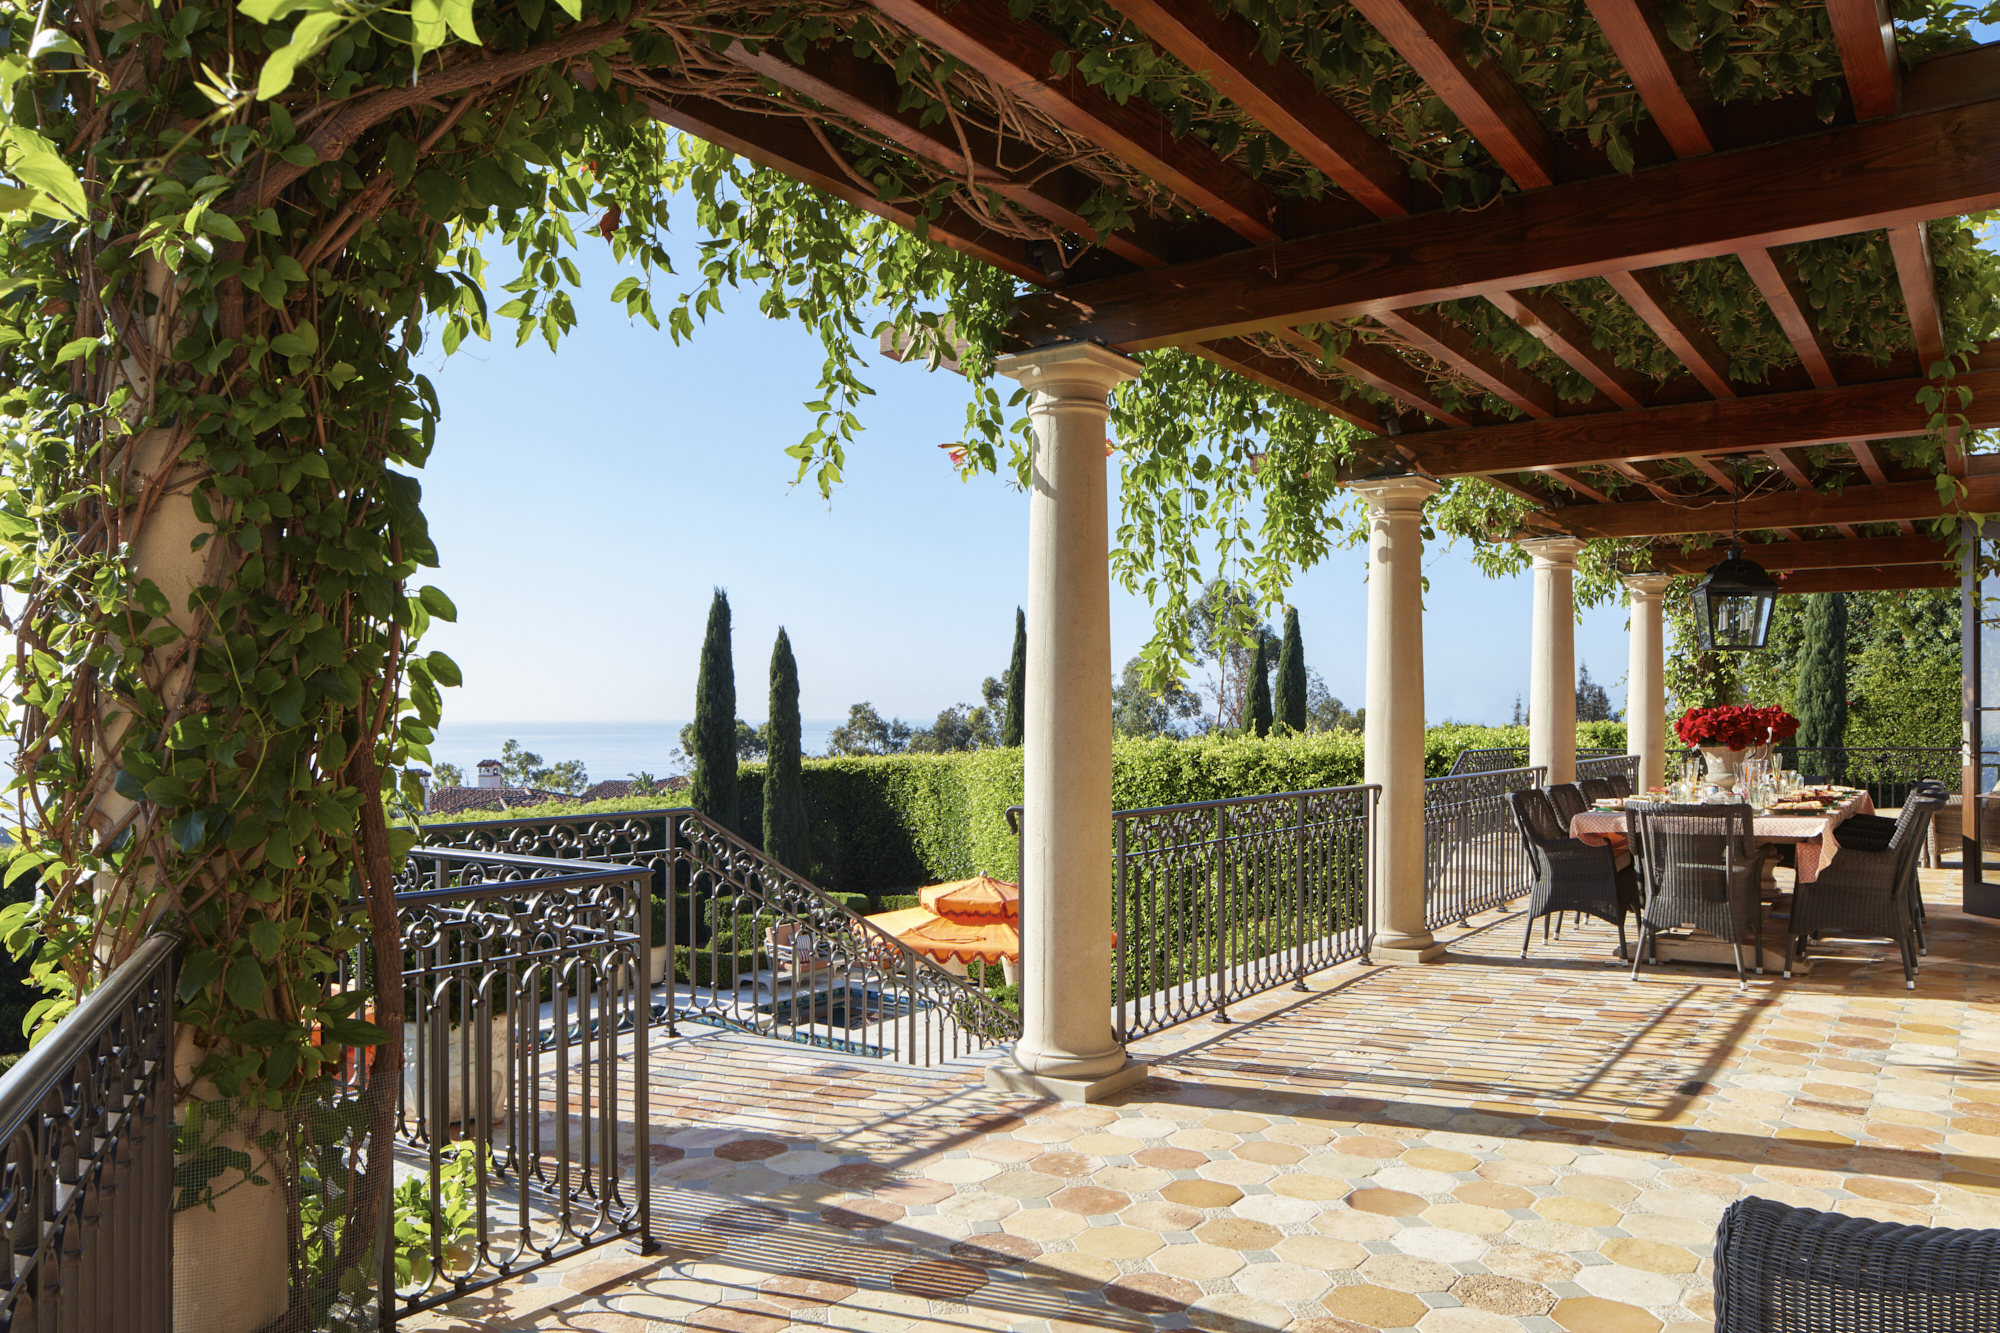 Pergola and Terrace with Ocean View by Paul Brant Williger, Architect Inc.